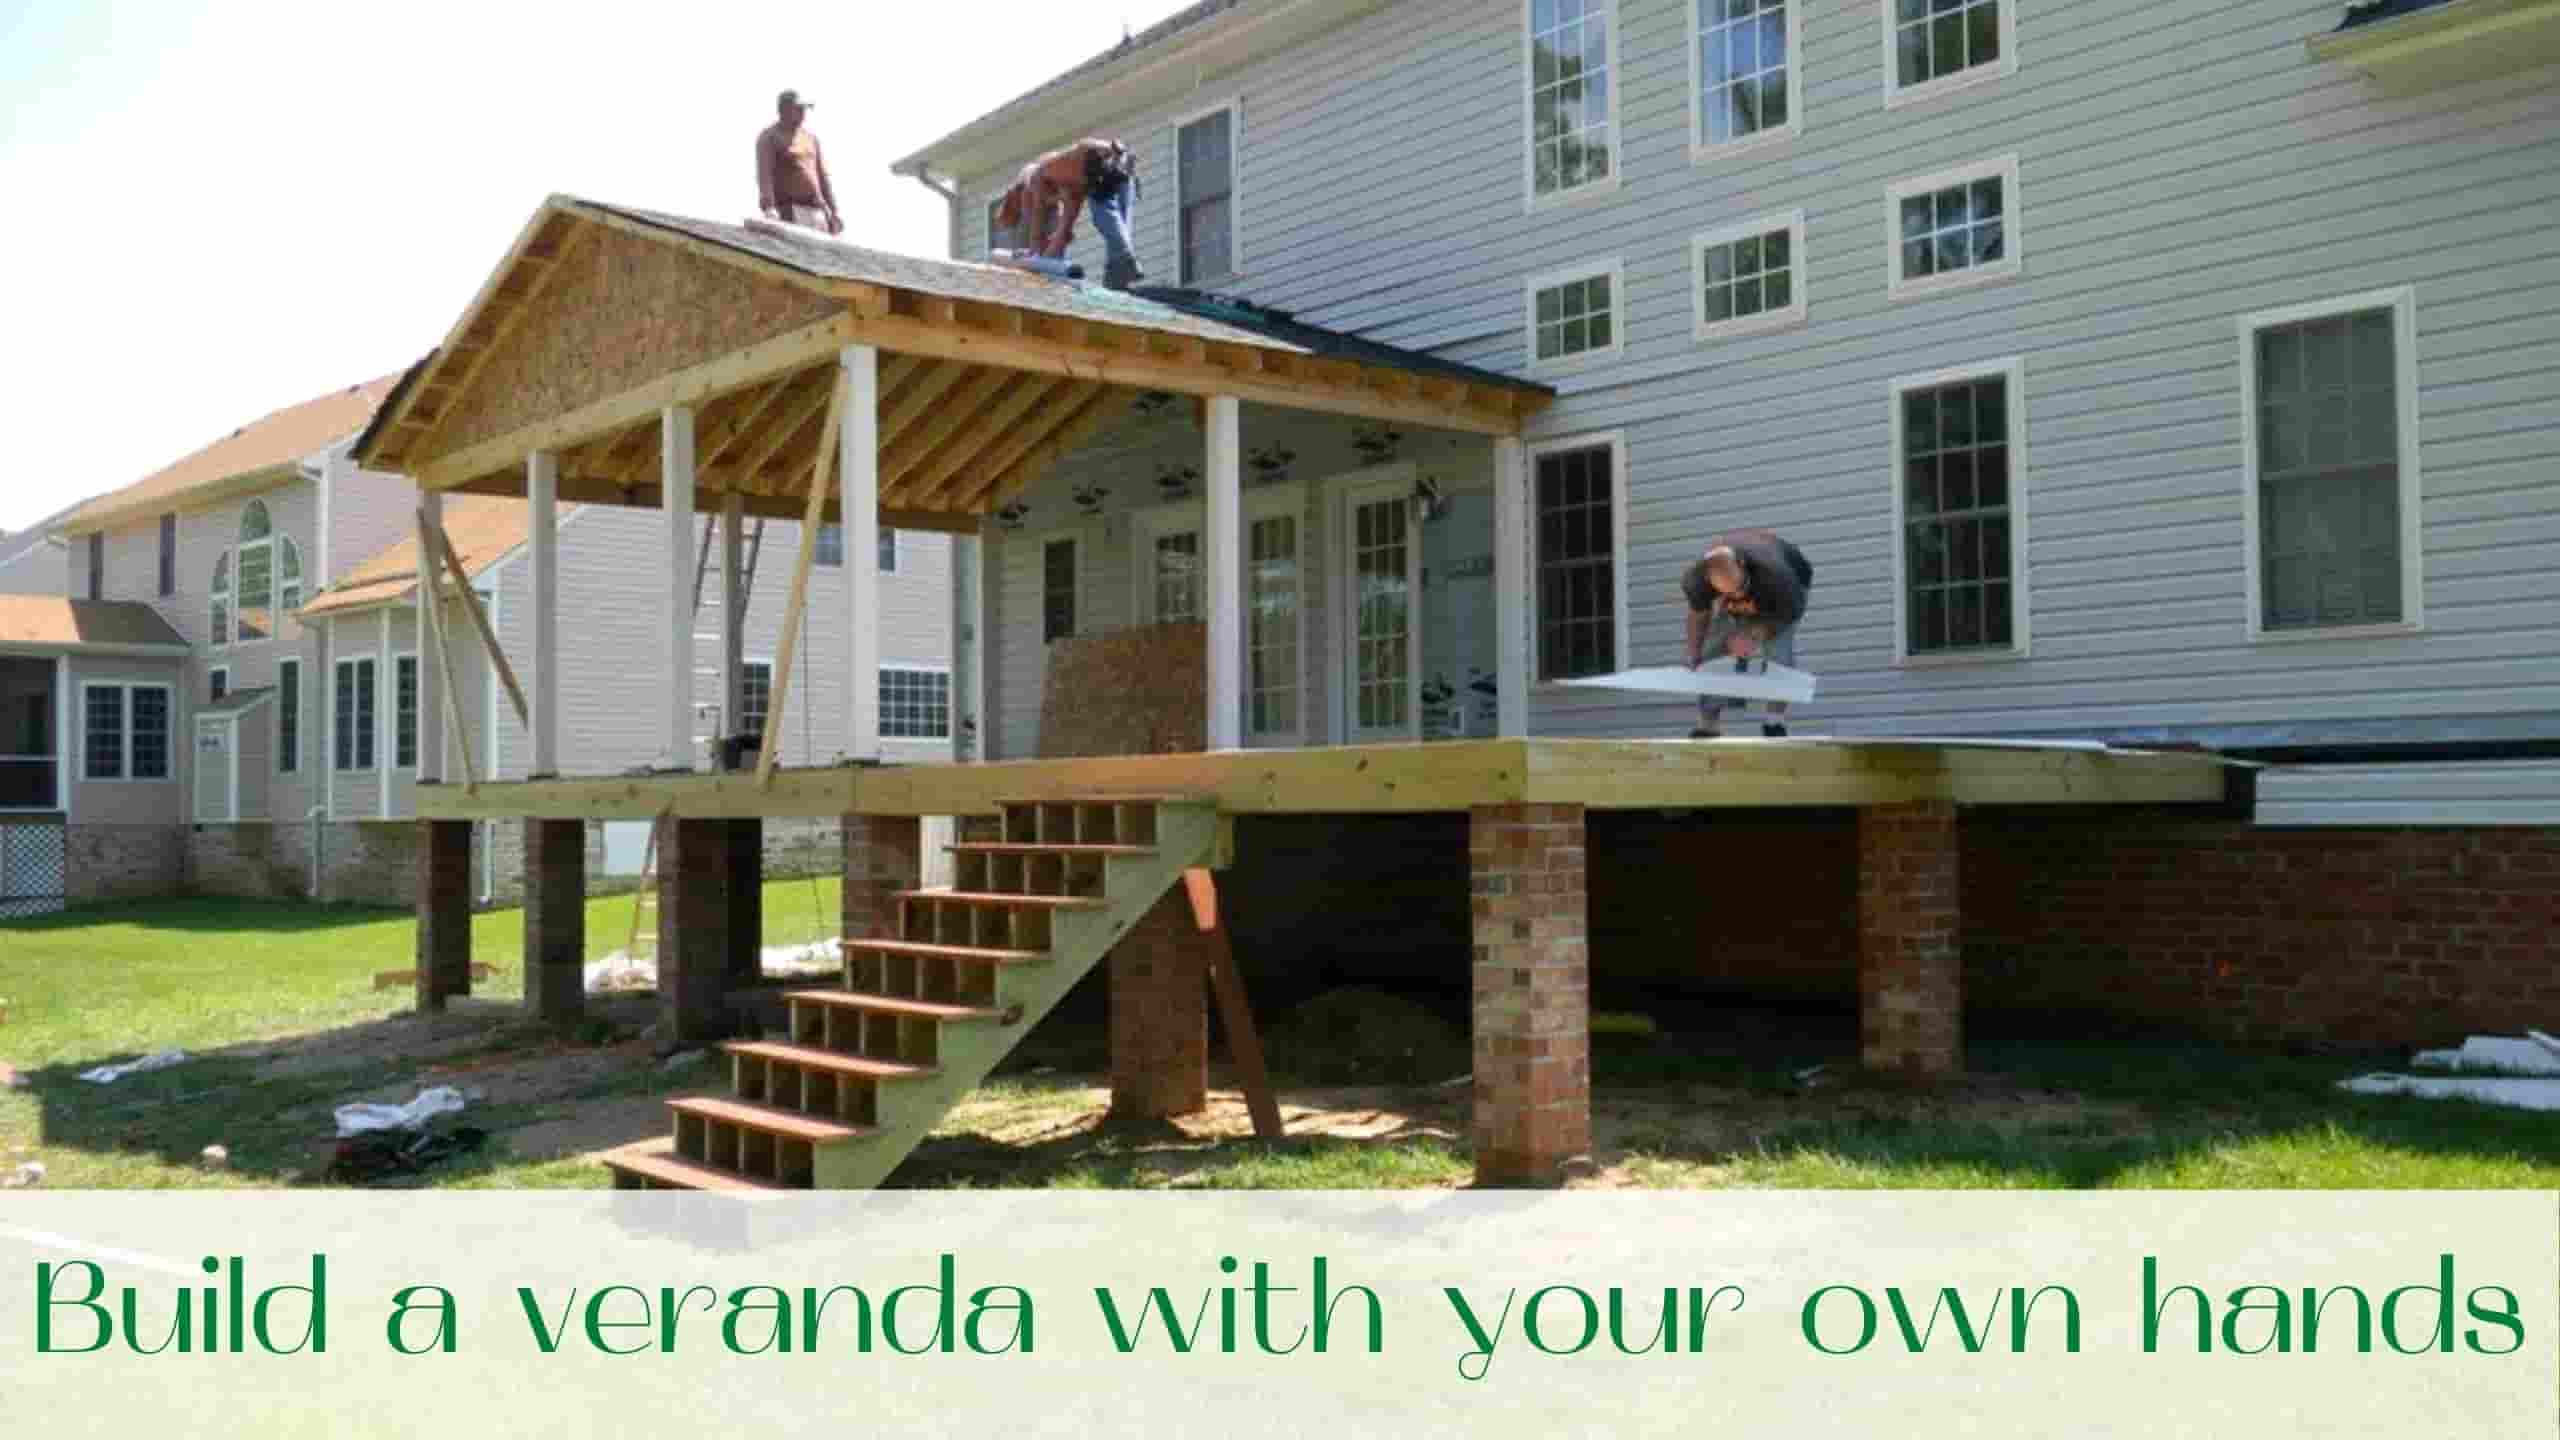 image-build-a-veranda-with-your-own-hands